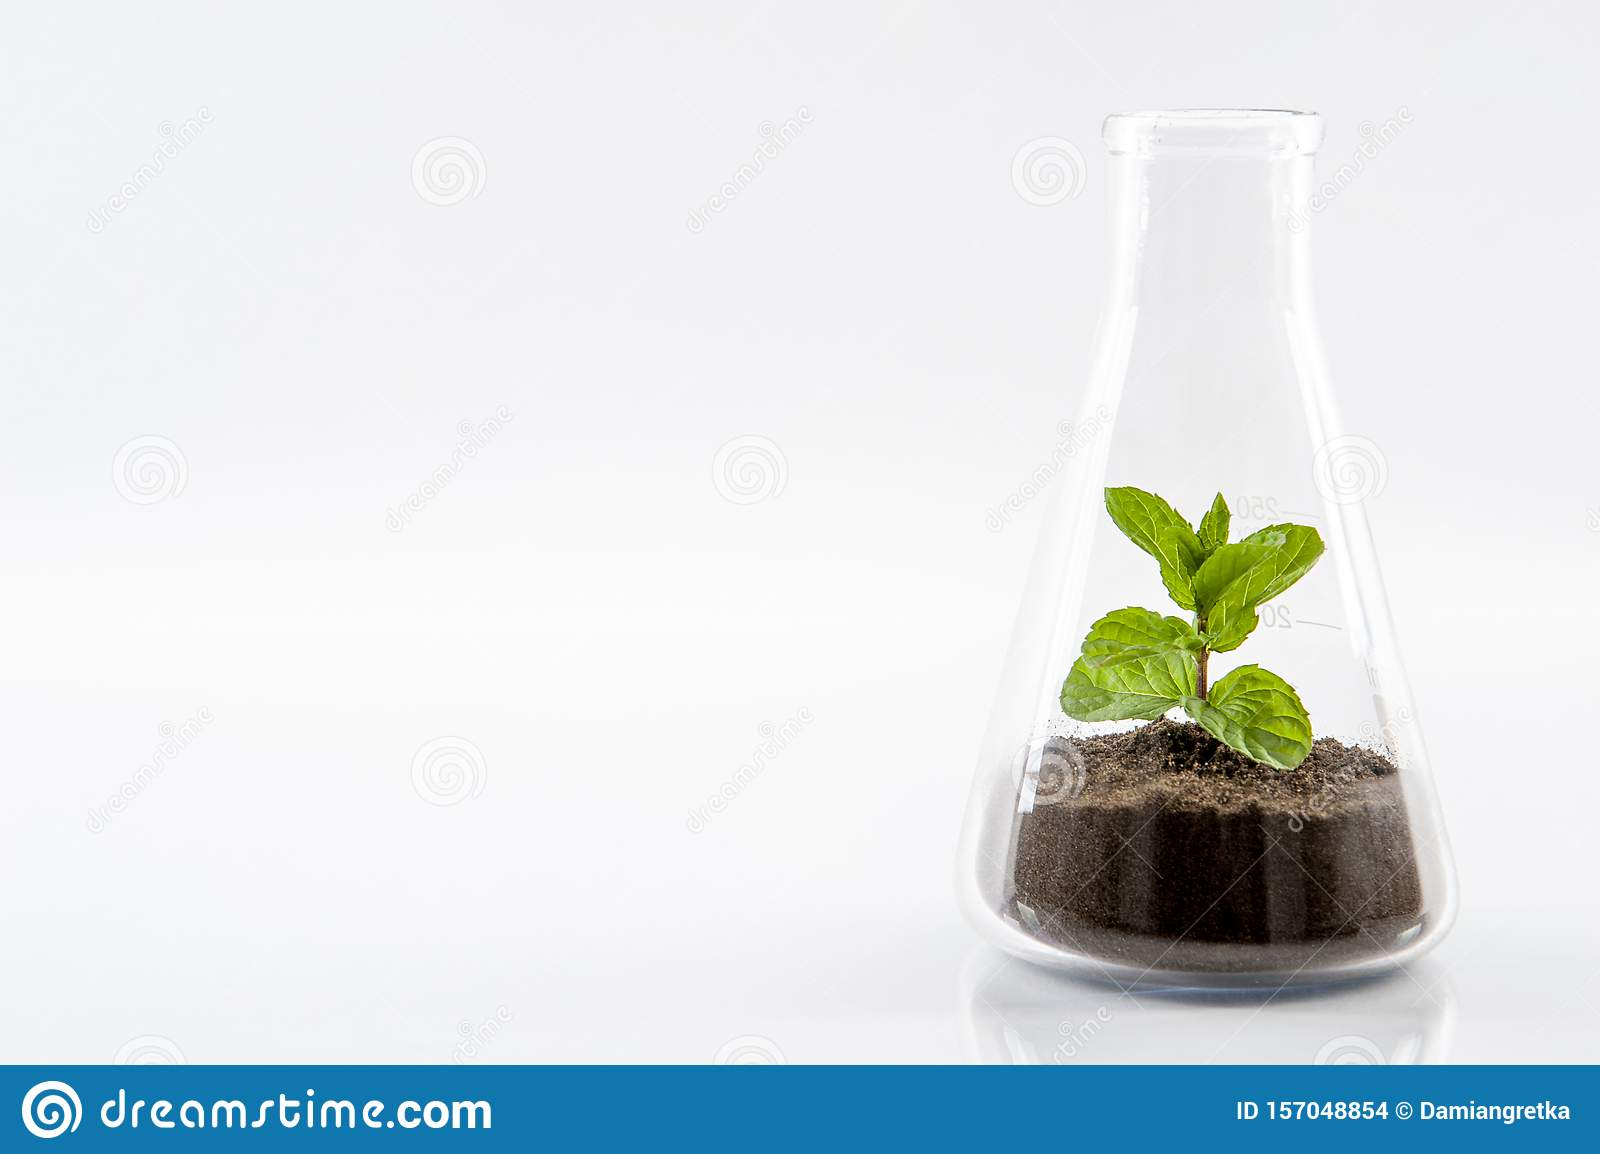 Nature under protection in the form of organic breeding in glass